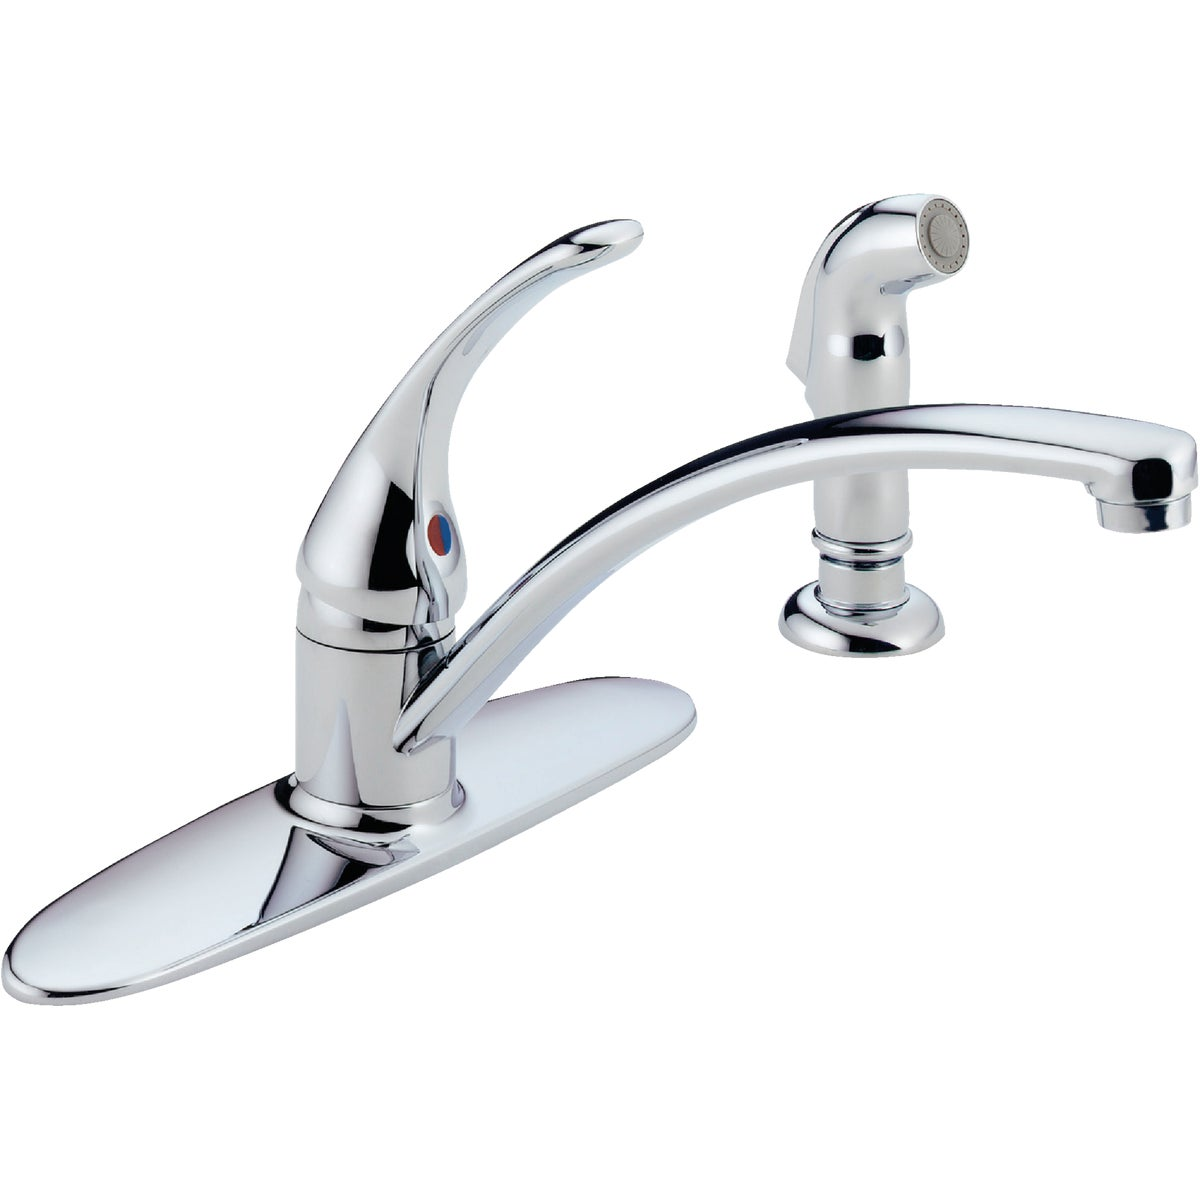 1H CHR KIT FAUCET W/SPRY - B4410LF by Delta Faucet Co